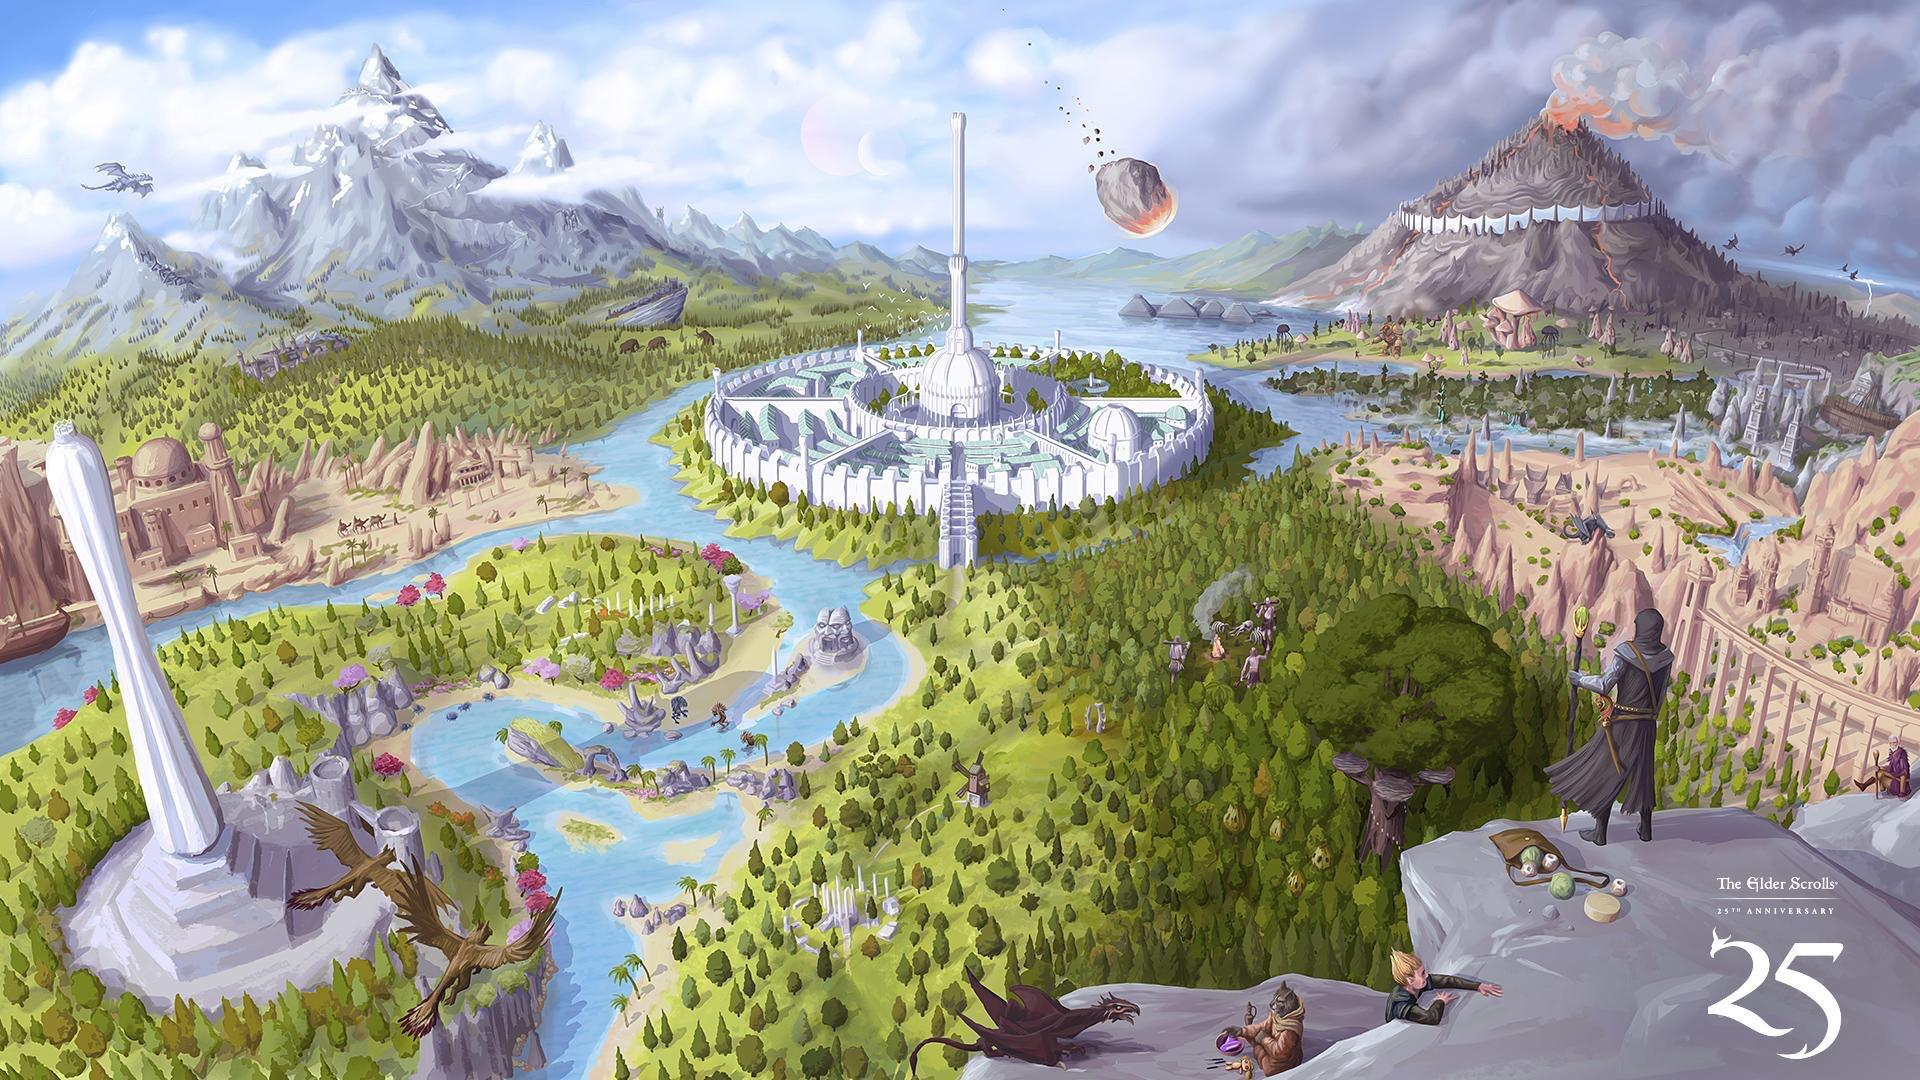 This 25th anniversary promo image displays a map of Tamriel featuring references to all TES games.